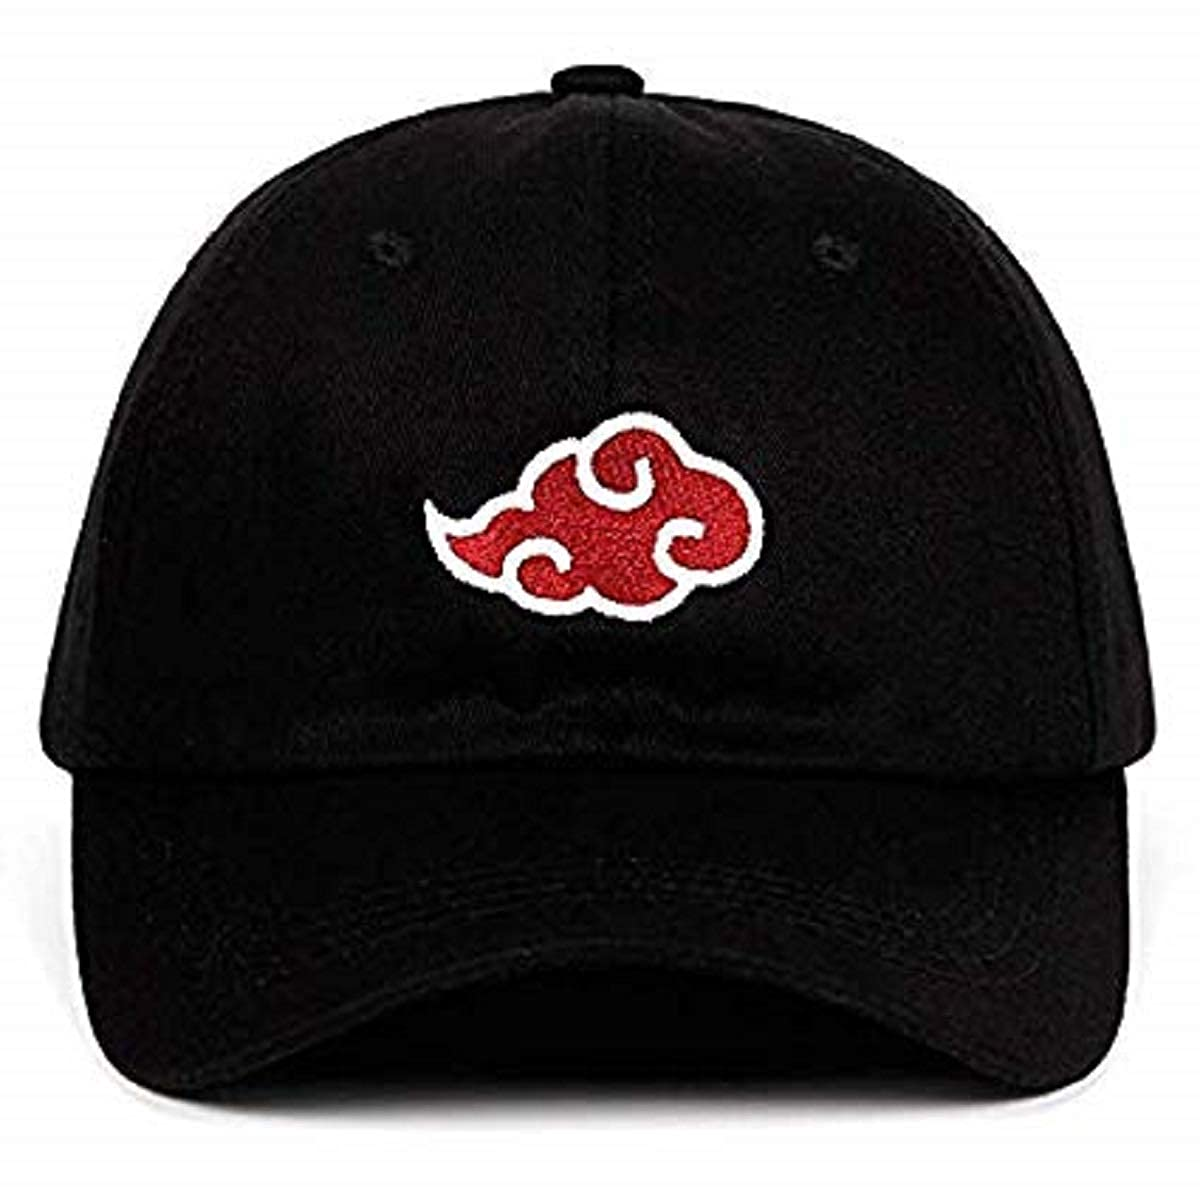 Amazon.com: Naruto Dad Hat Uchiha Family Logo Embroidery Baseball Caps Black Snapback Hats Black-1pc-Small Family (Black, One Size): Clothing